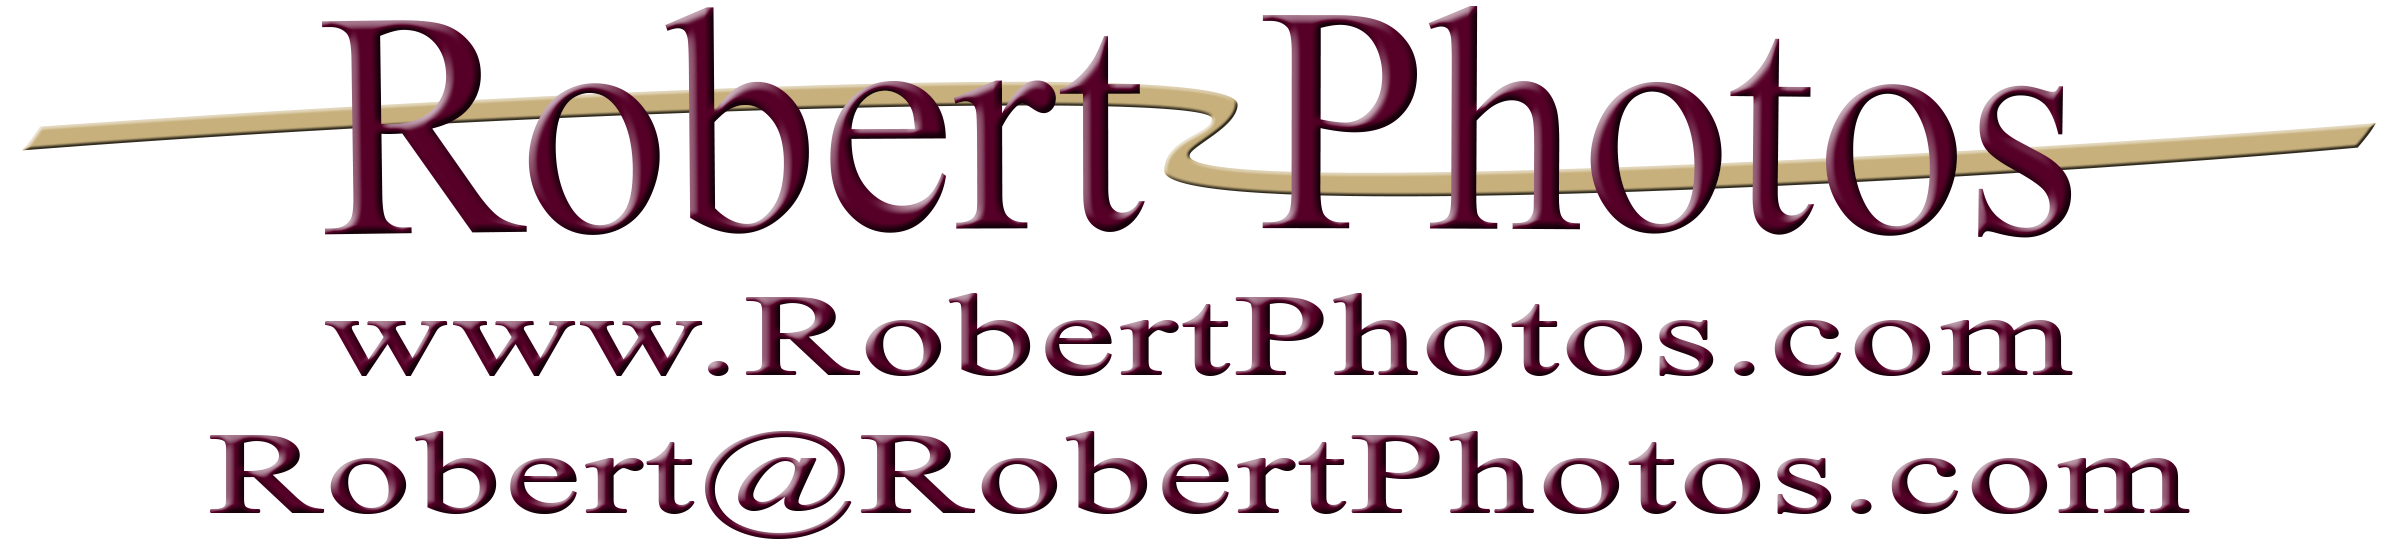 Robert Photos logo color with email.png